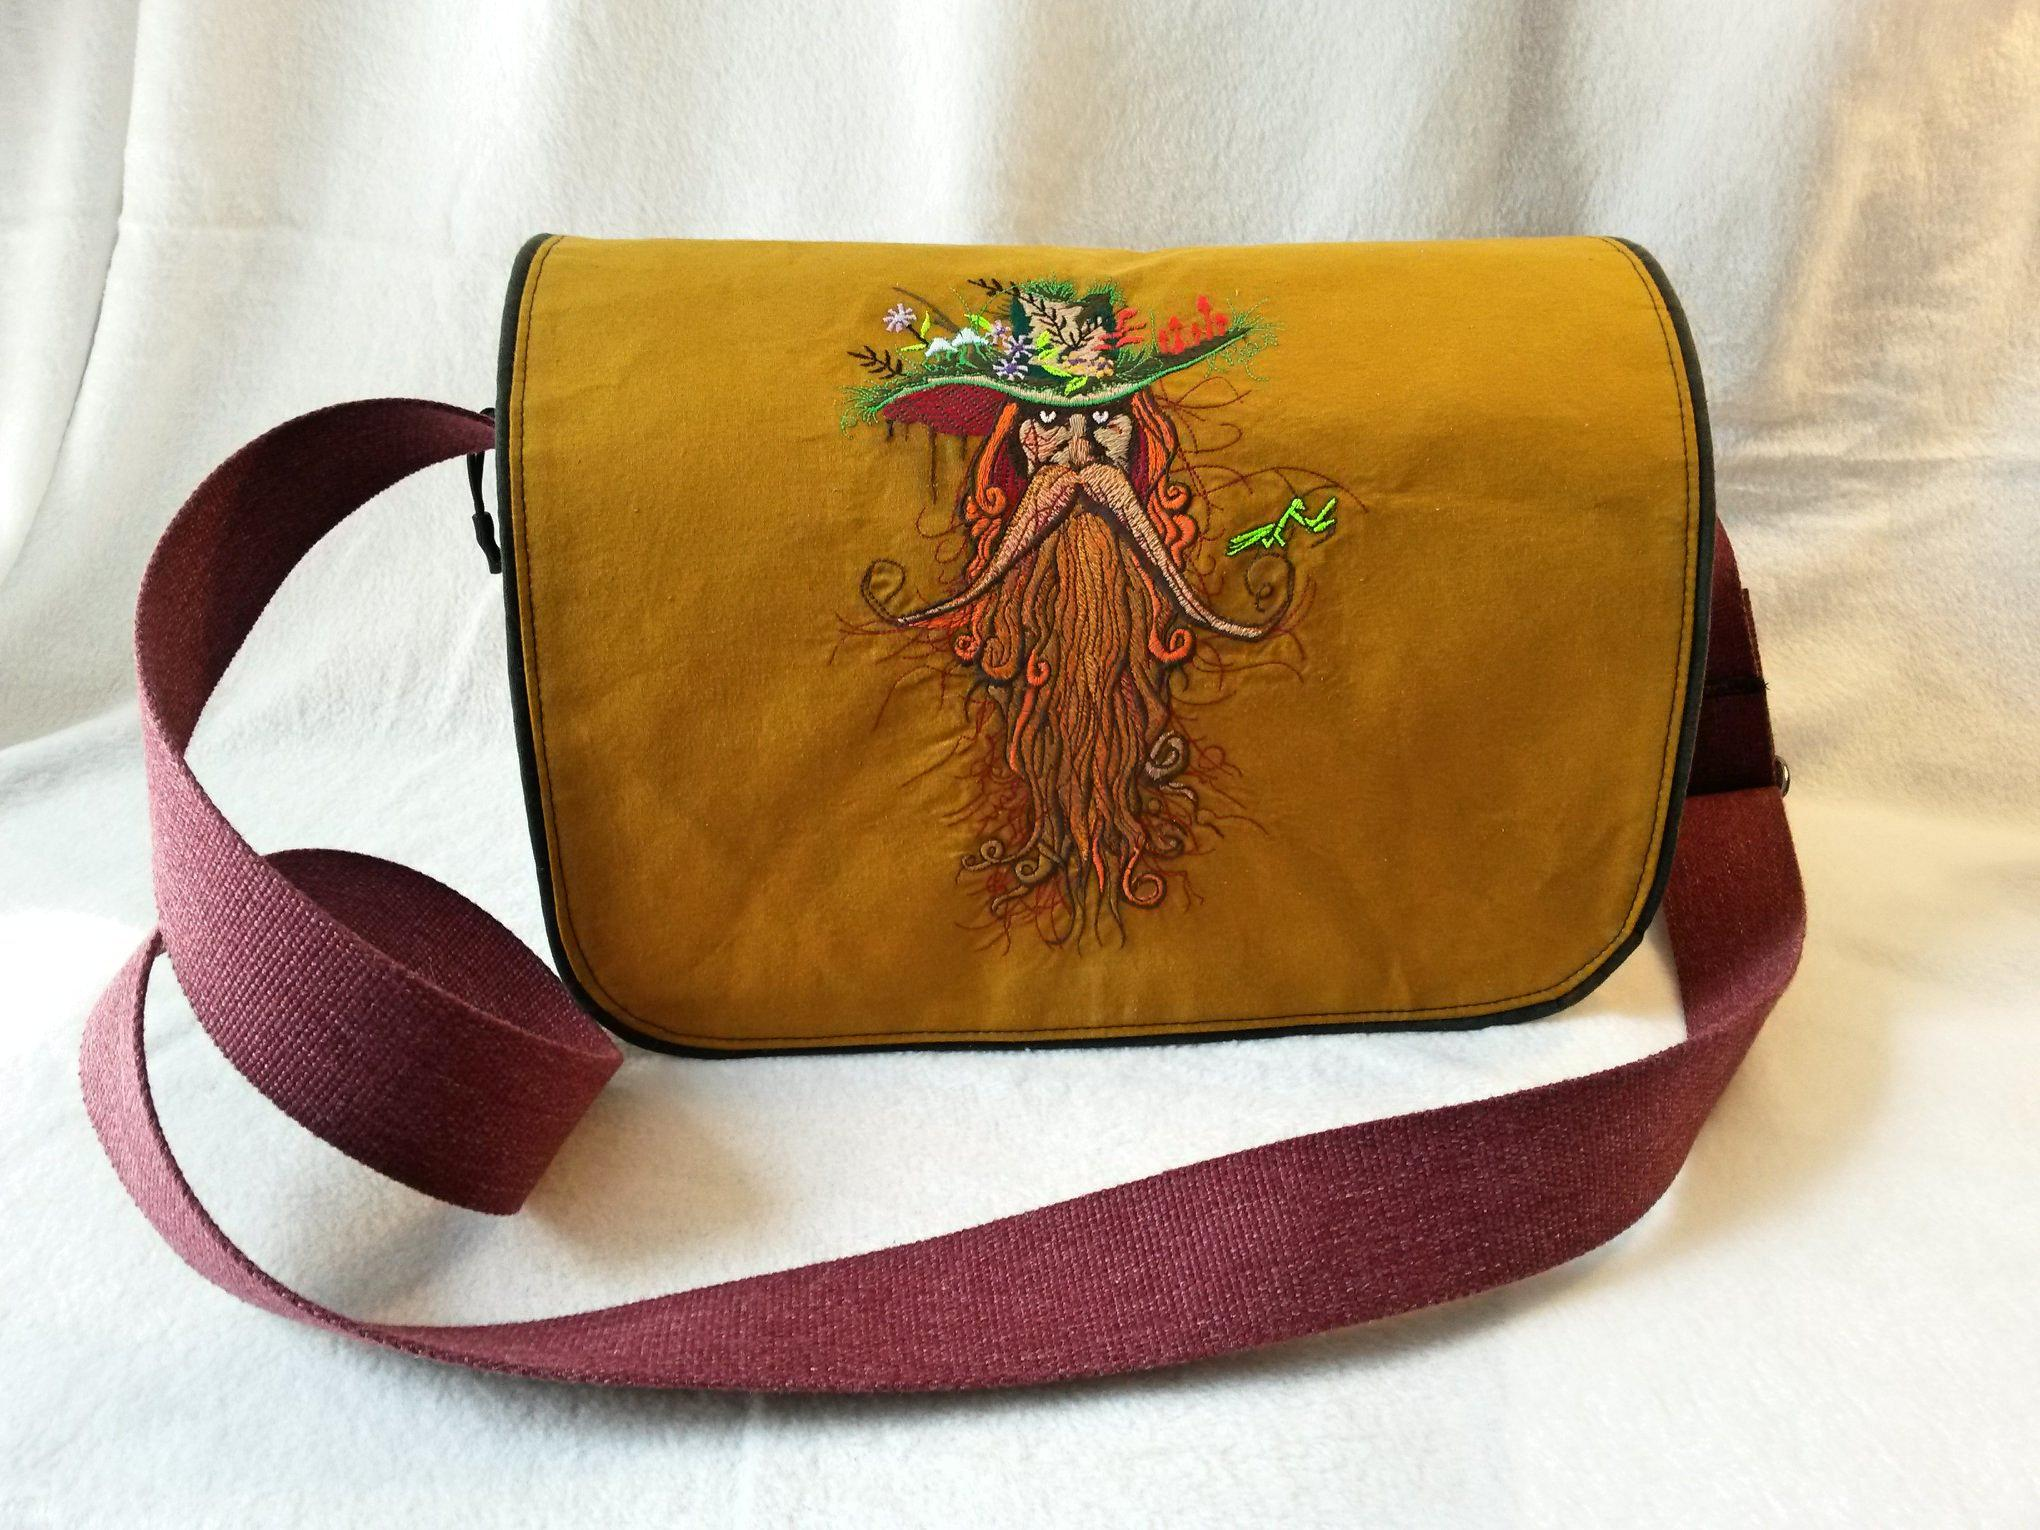 Embroidered bag with root man design